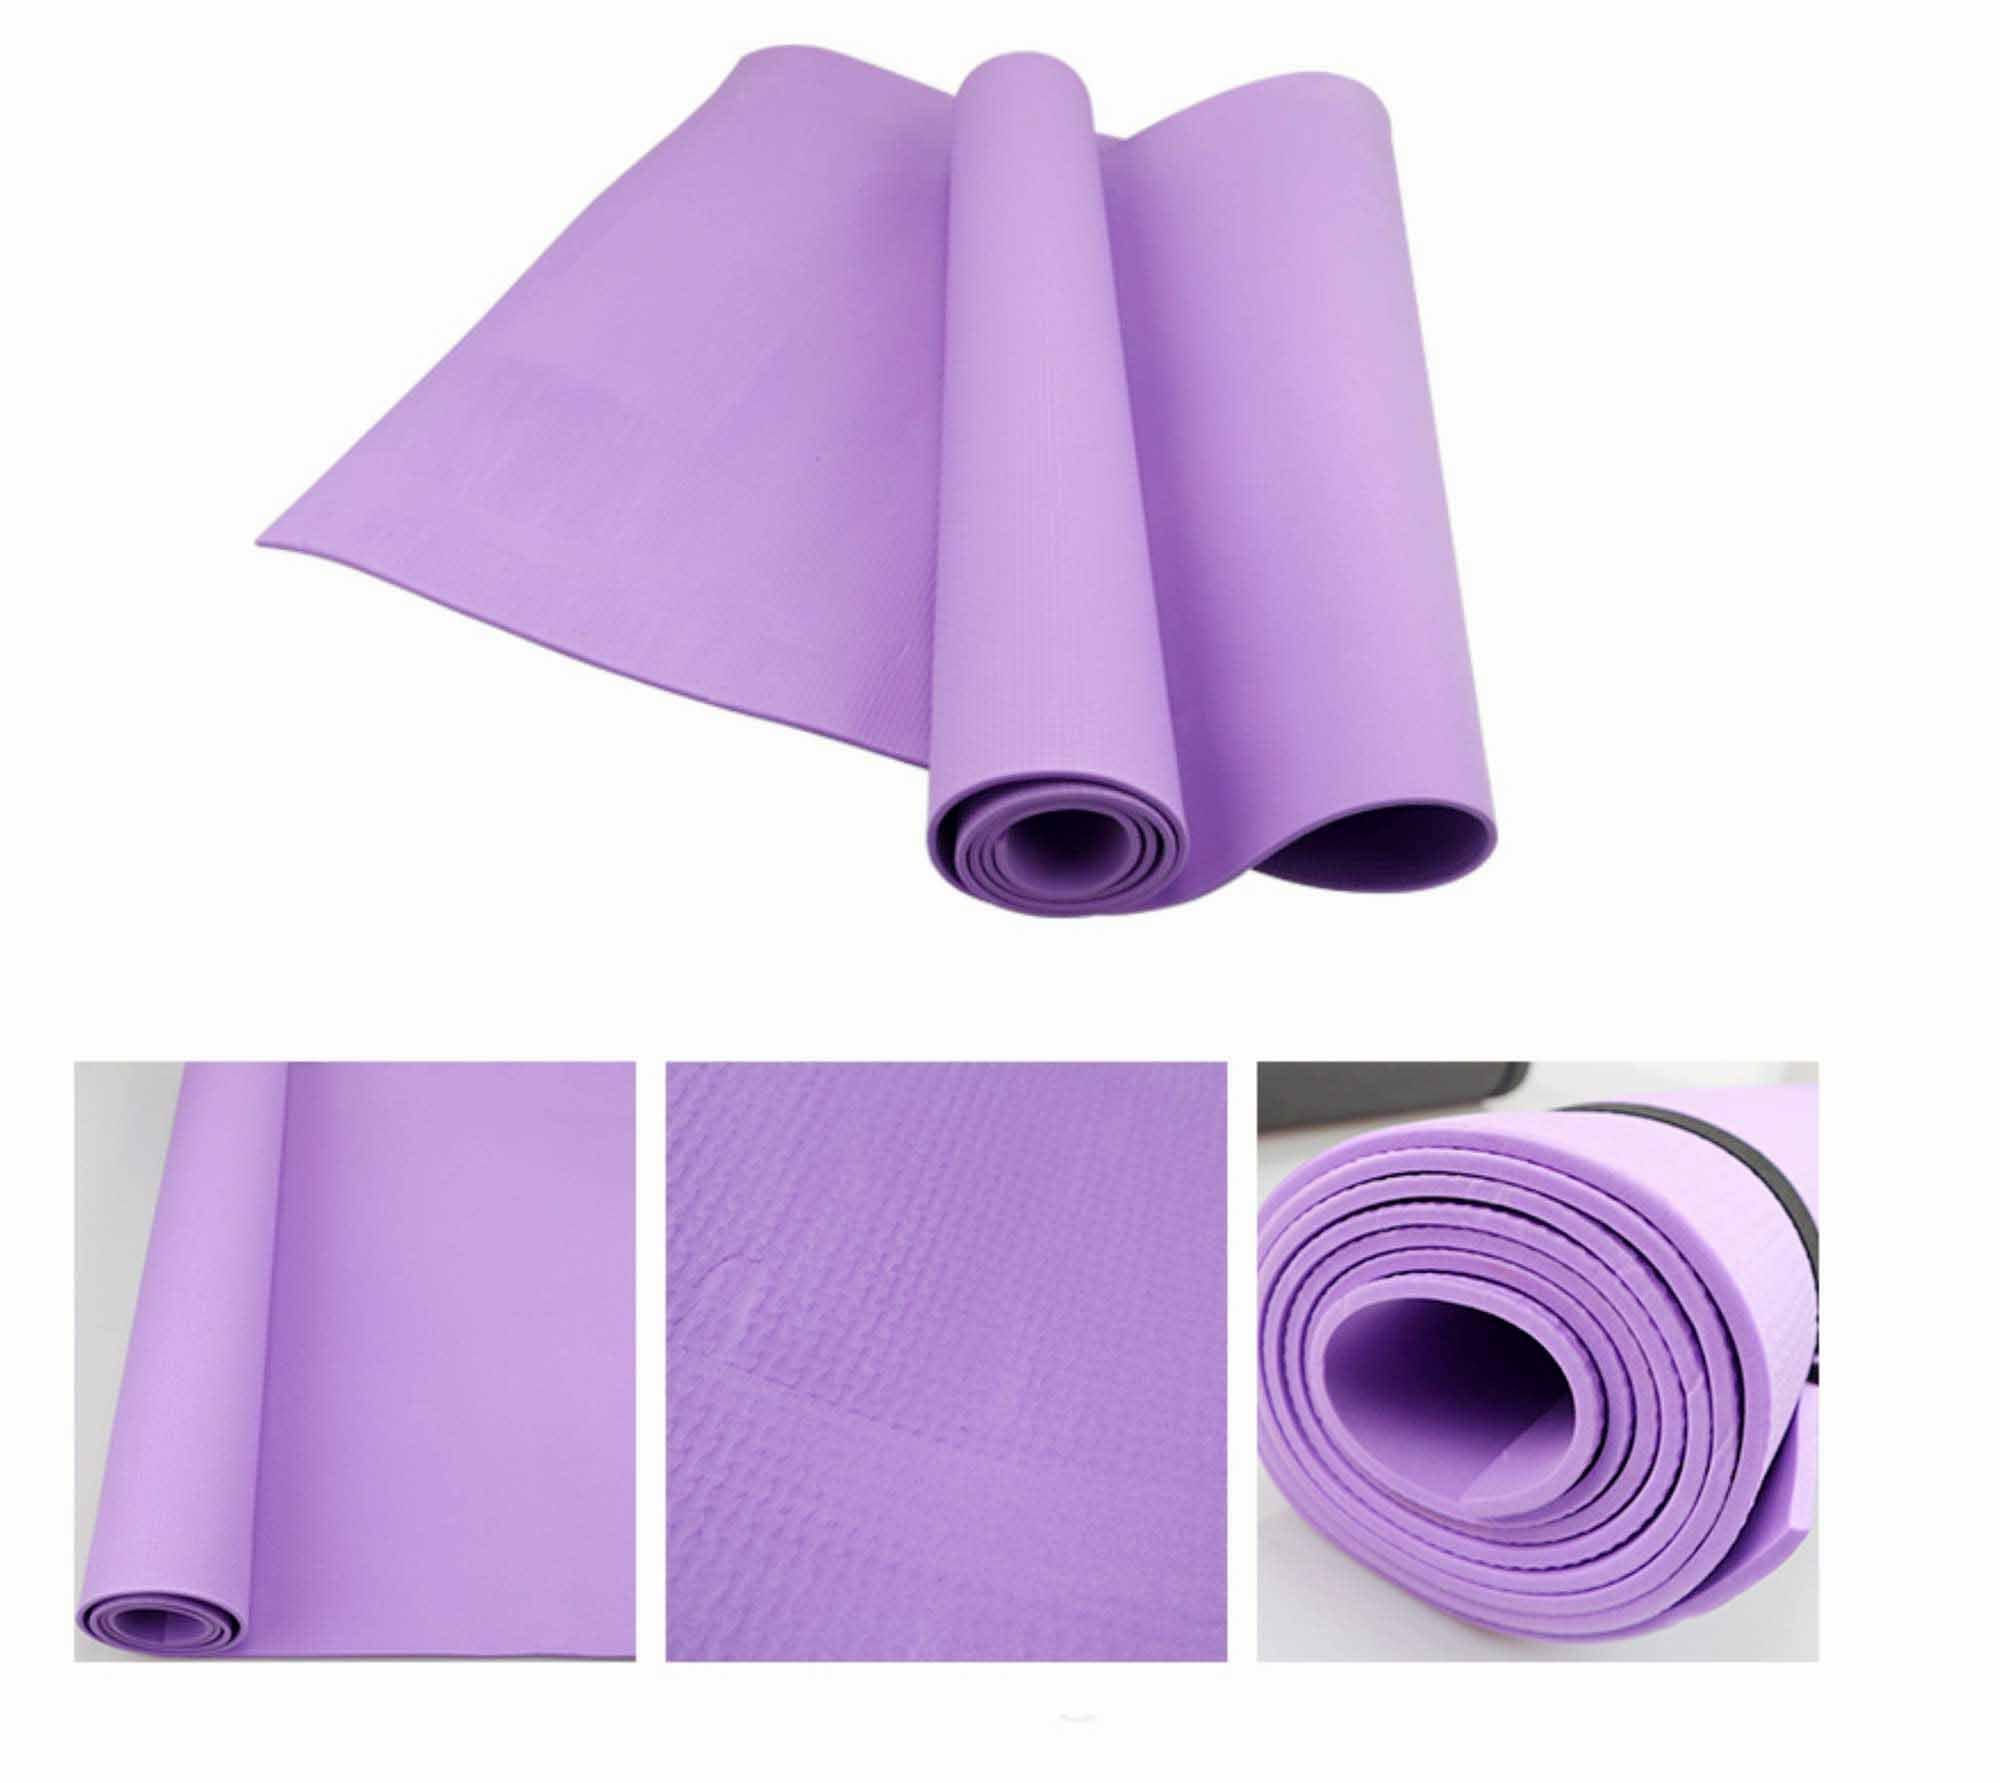 HIGHPOWERED Yoga Matte (dünn) - violett - HIGHPOWERED.ch